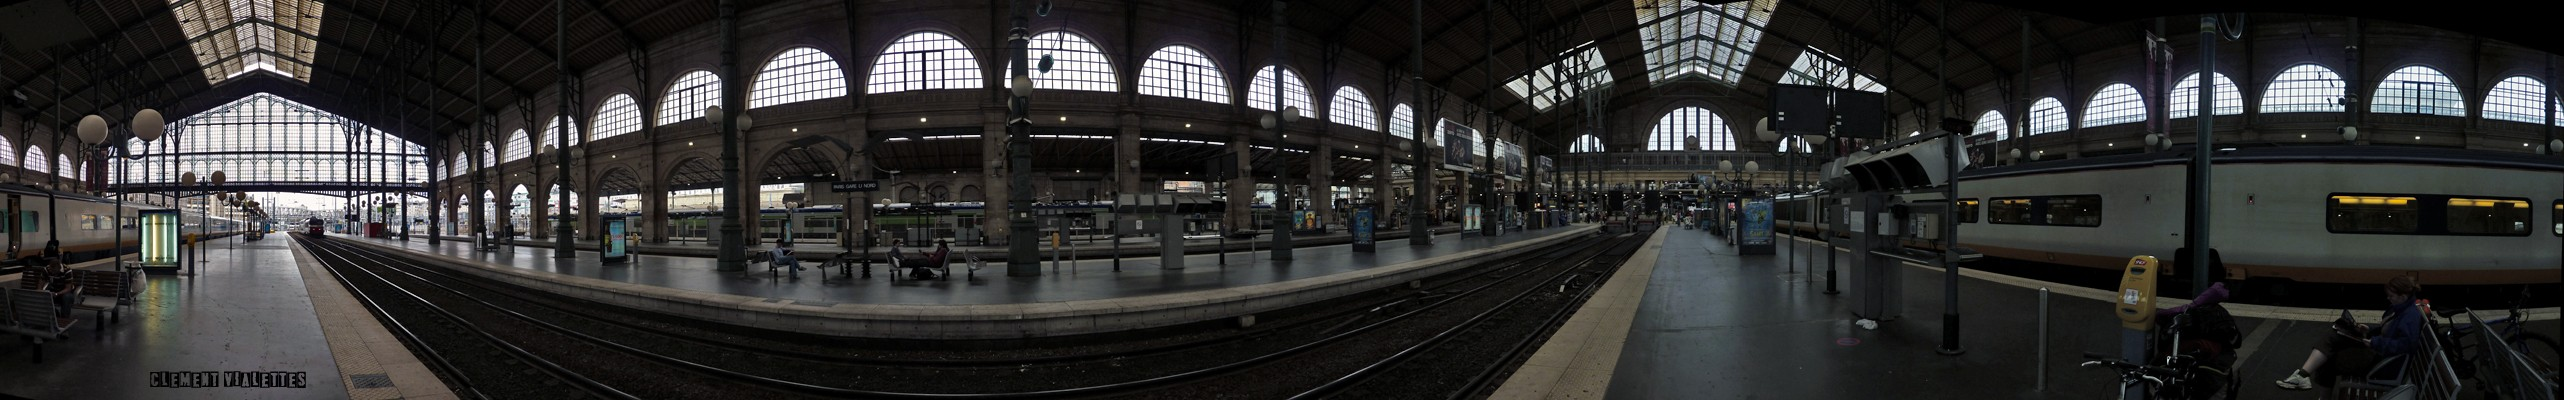 france-paris_gare_du_nord_01.jpg